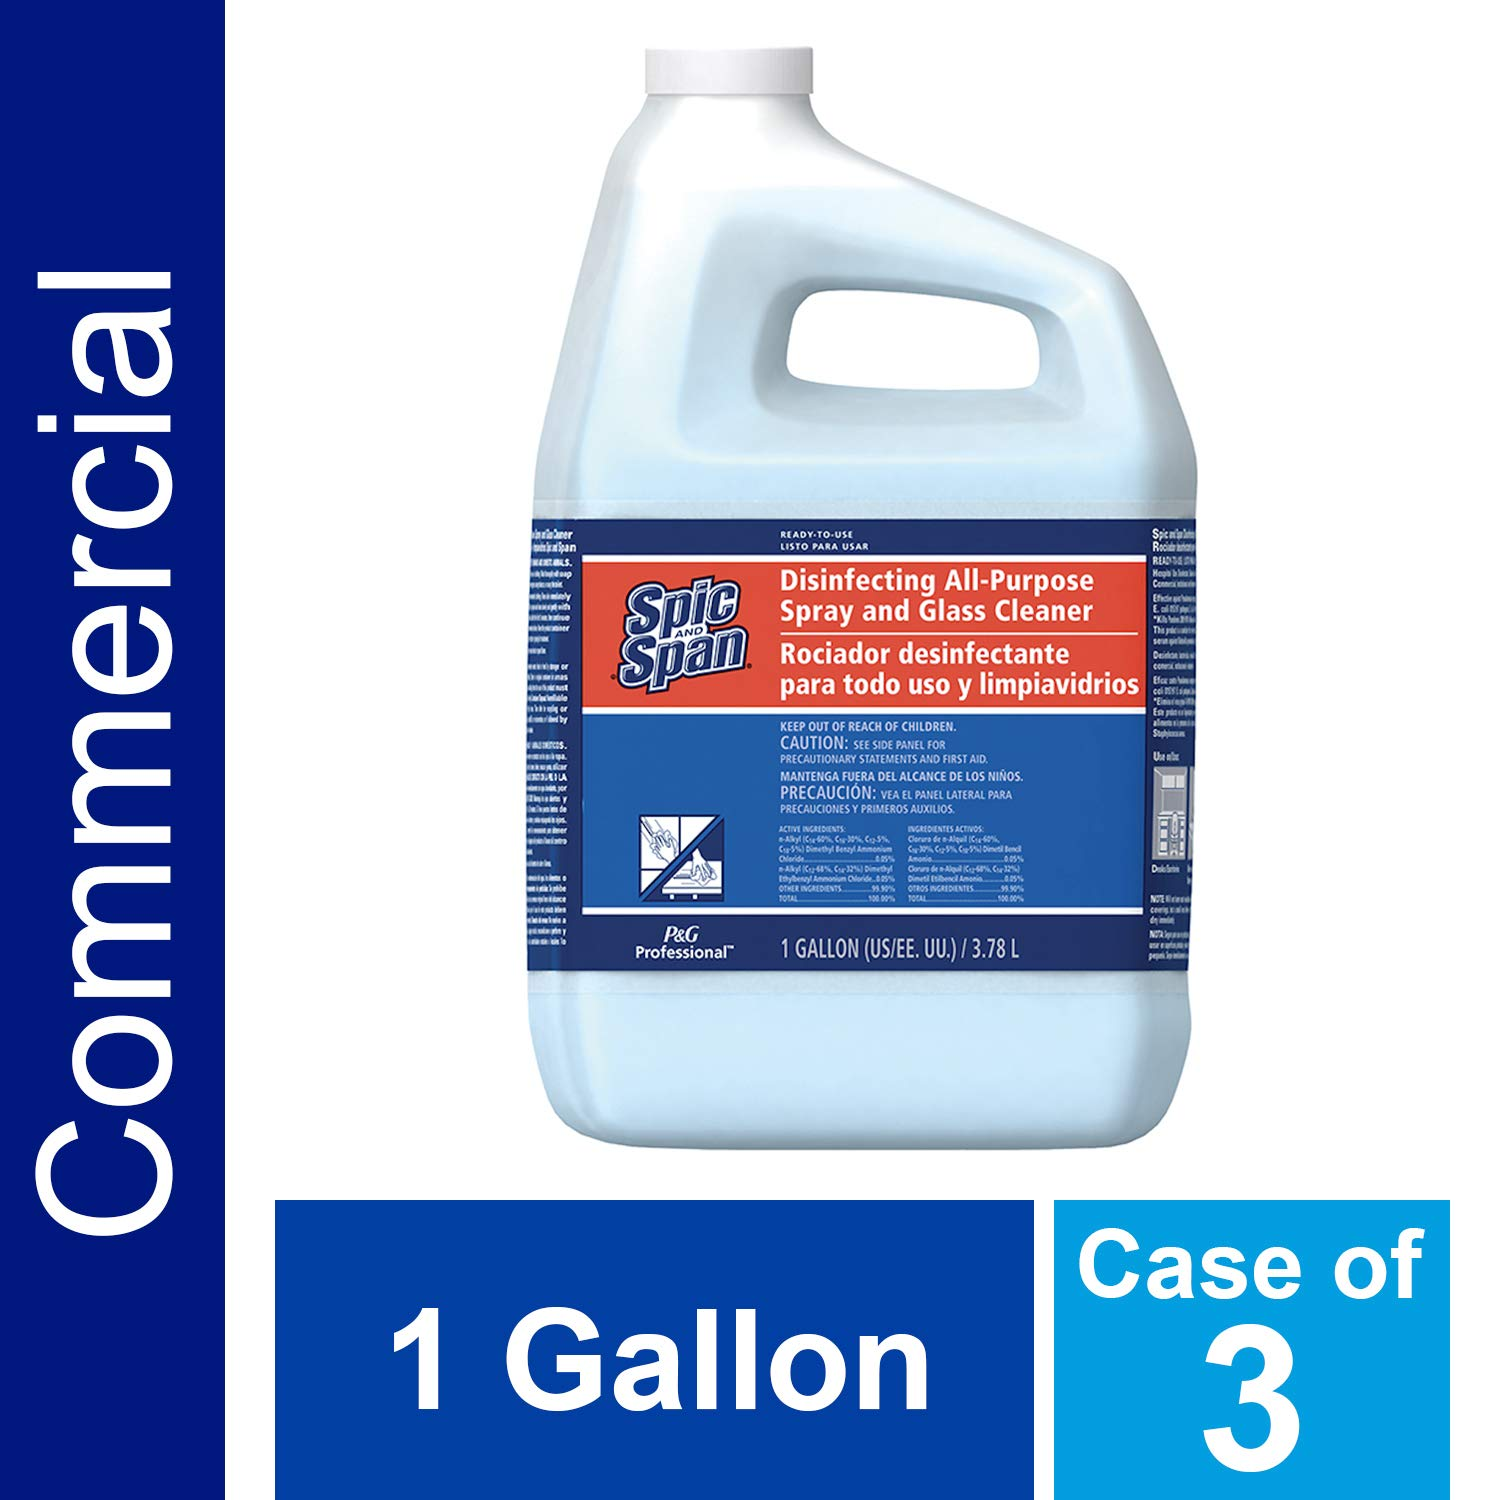 (Greater than 1180mls) - Disinfecting All-Purpose Spray and Glass Cleaner, Fresh Scent, 1 gal Bottle B0745D4YVV